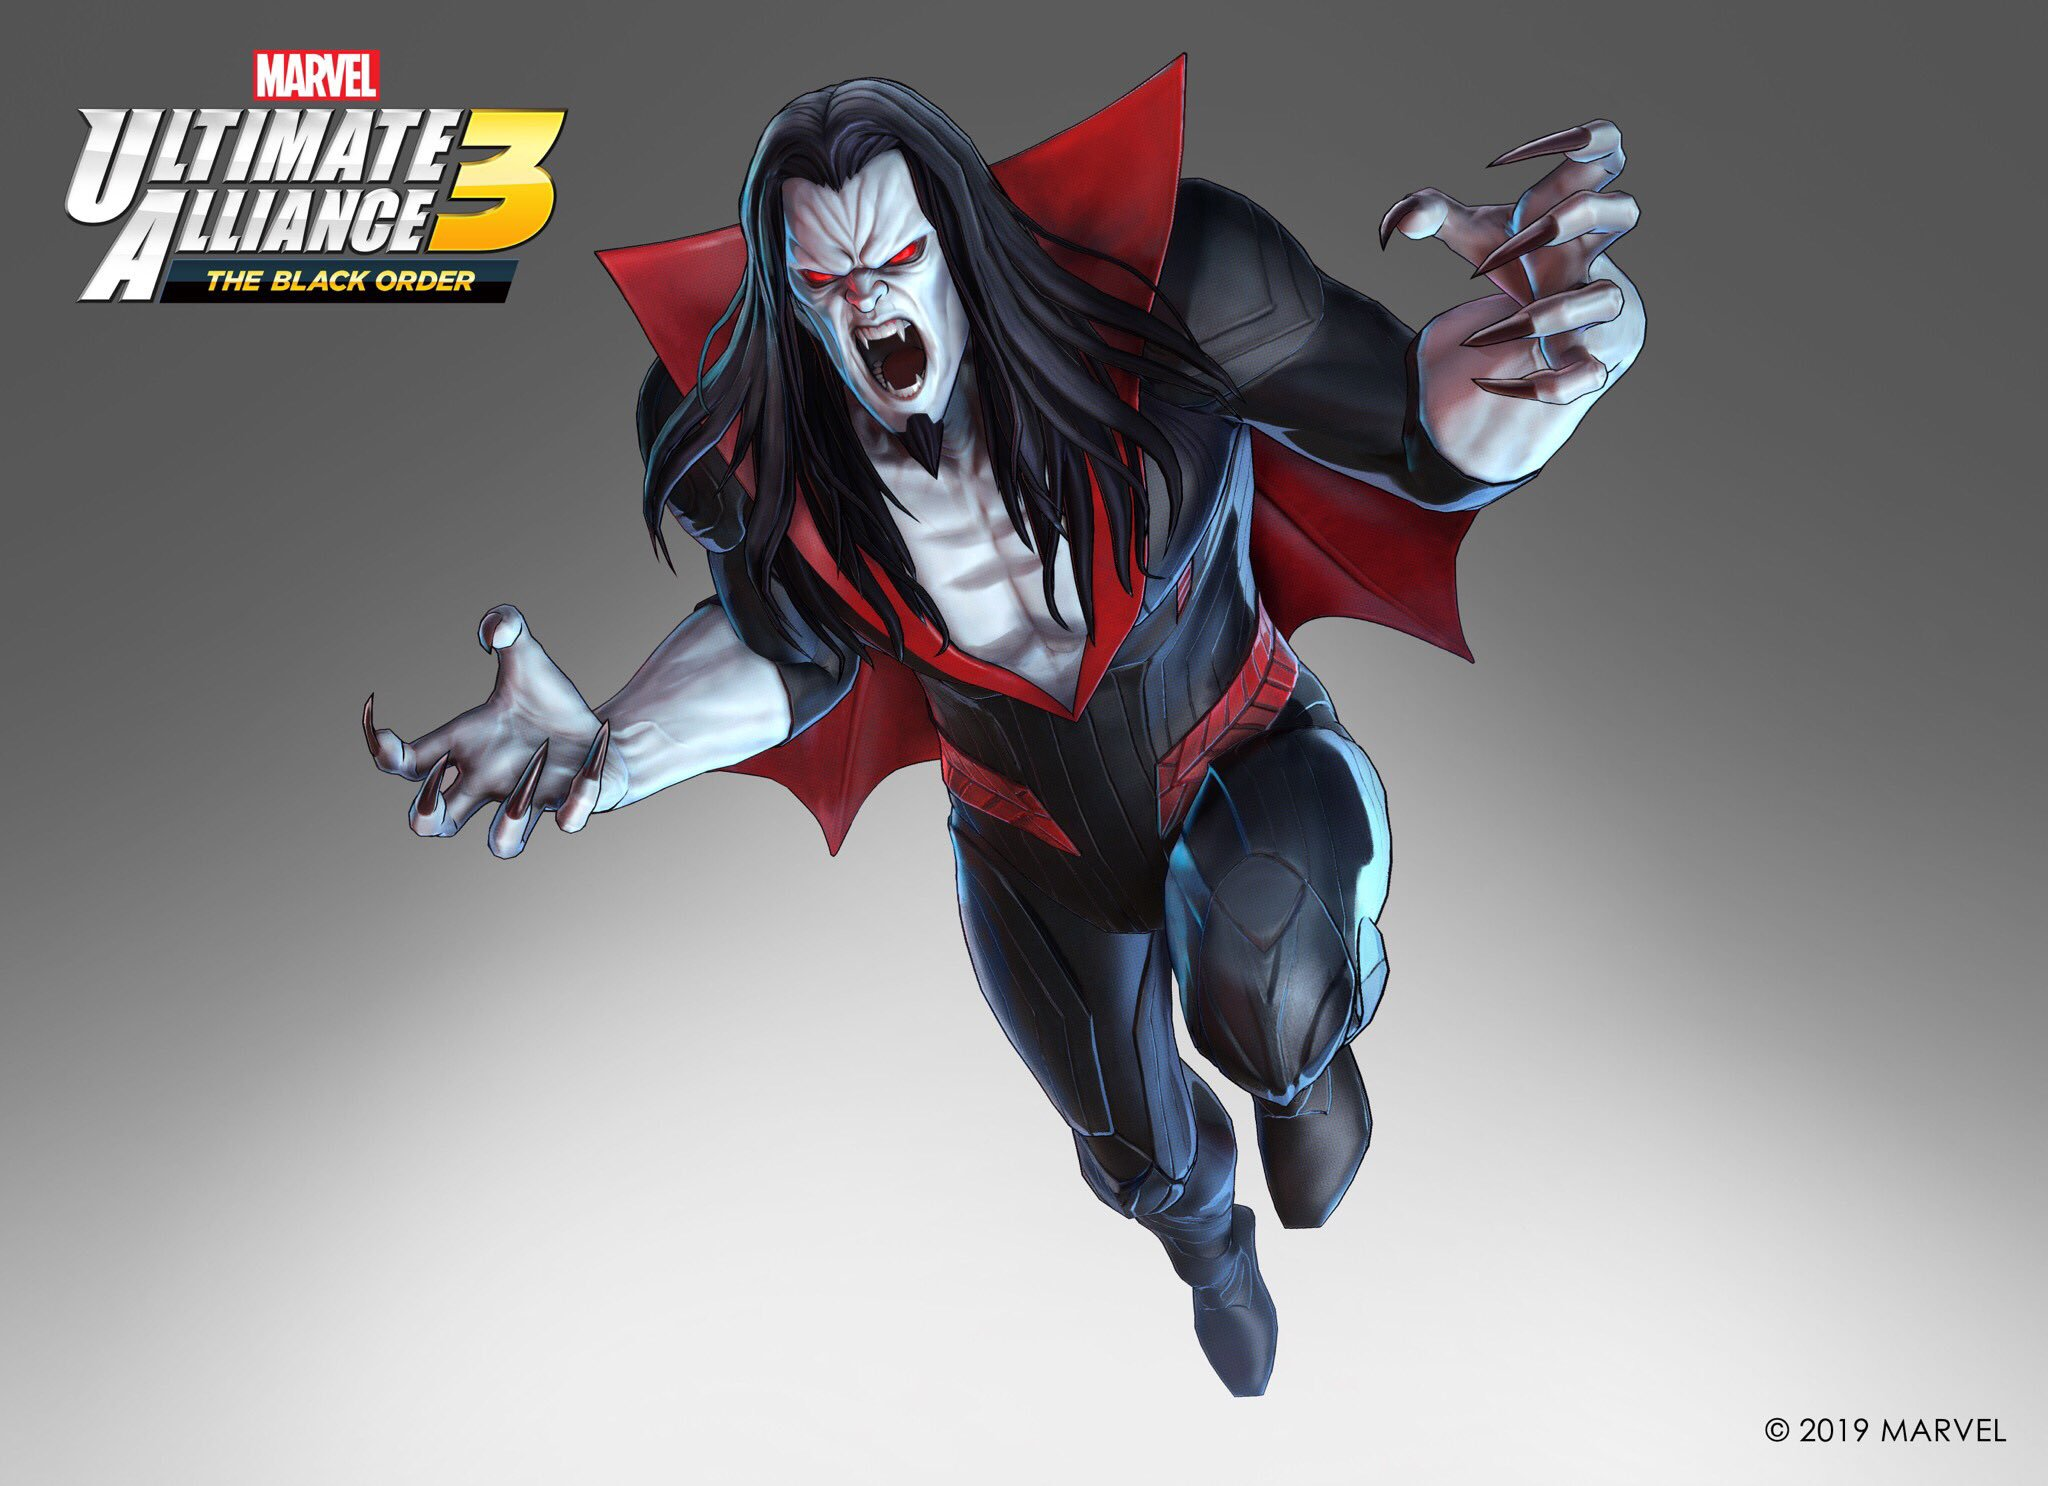 Marvel Ultimate Alliance 3 introduces Blade, Moon Knight, Punisher and Morbius in Curse of the Vampire DLC